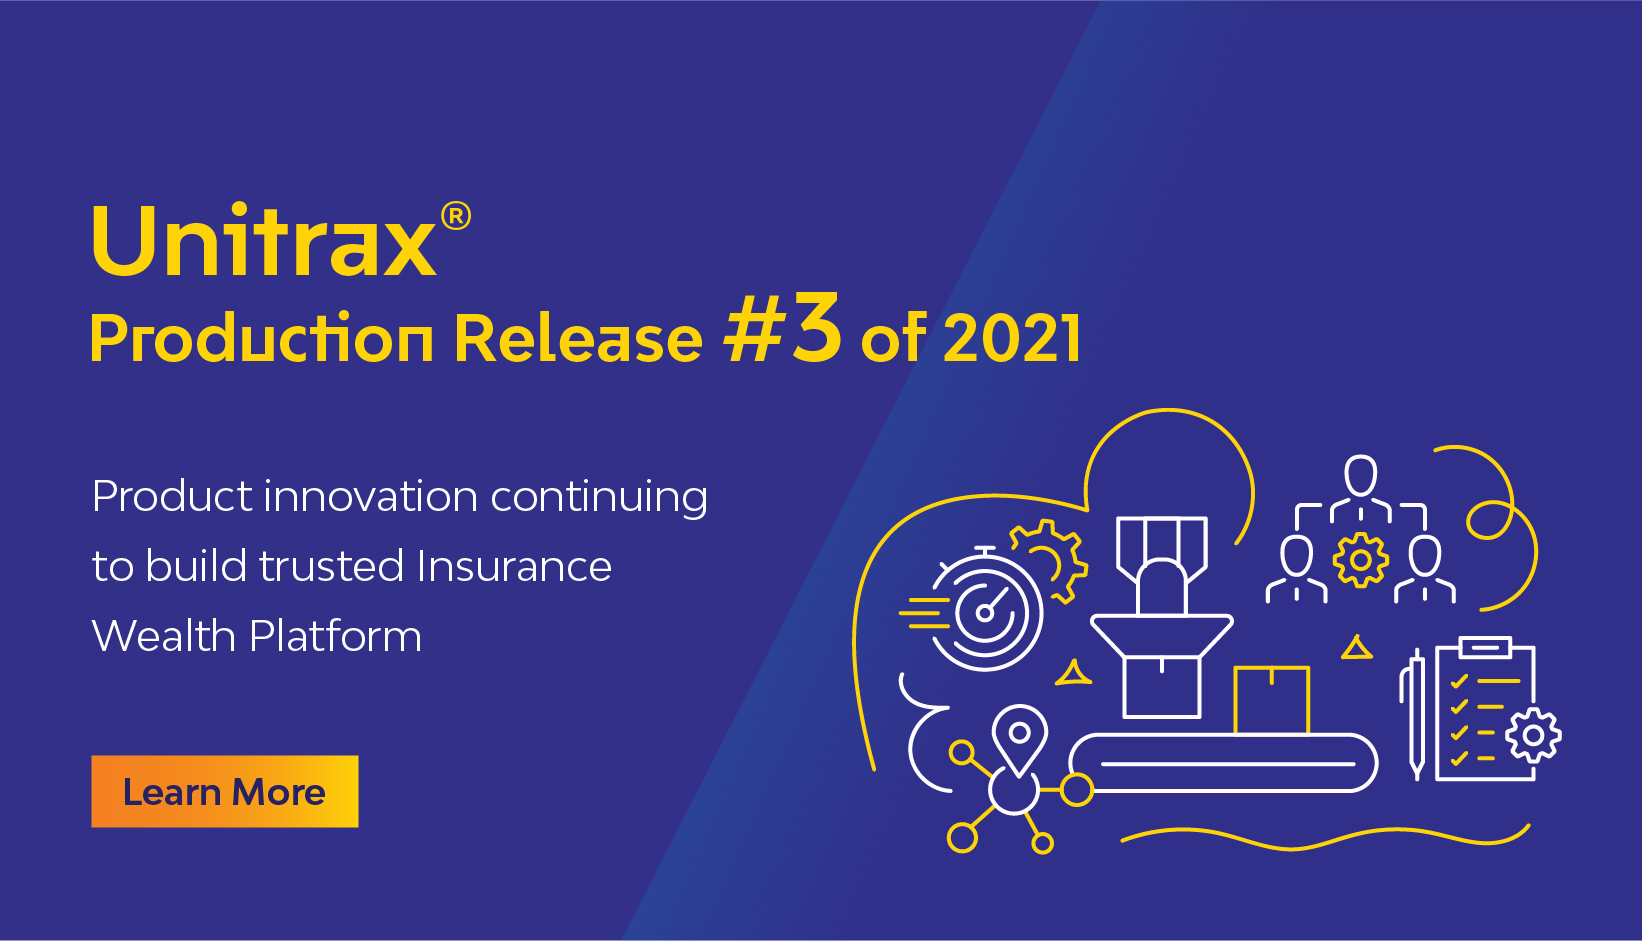 Unitrax® with 3rd production release of 2021